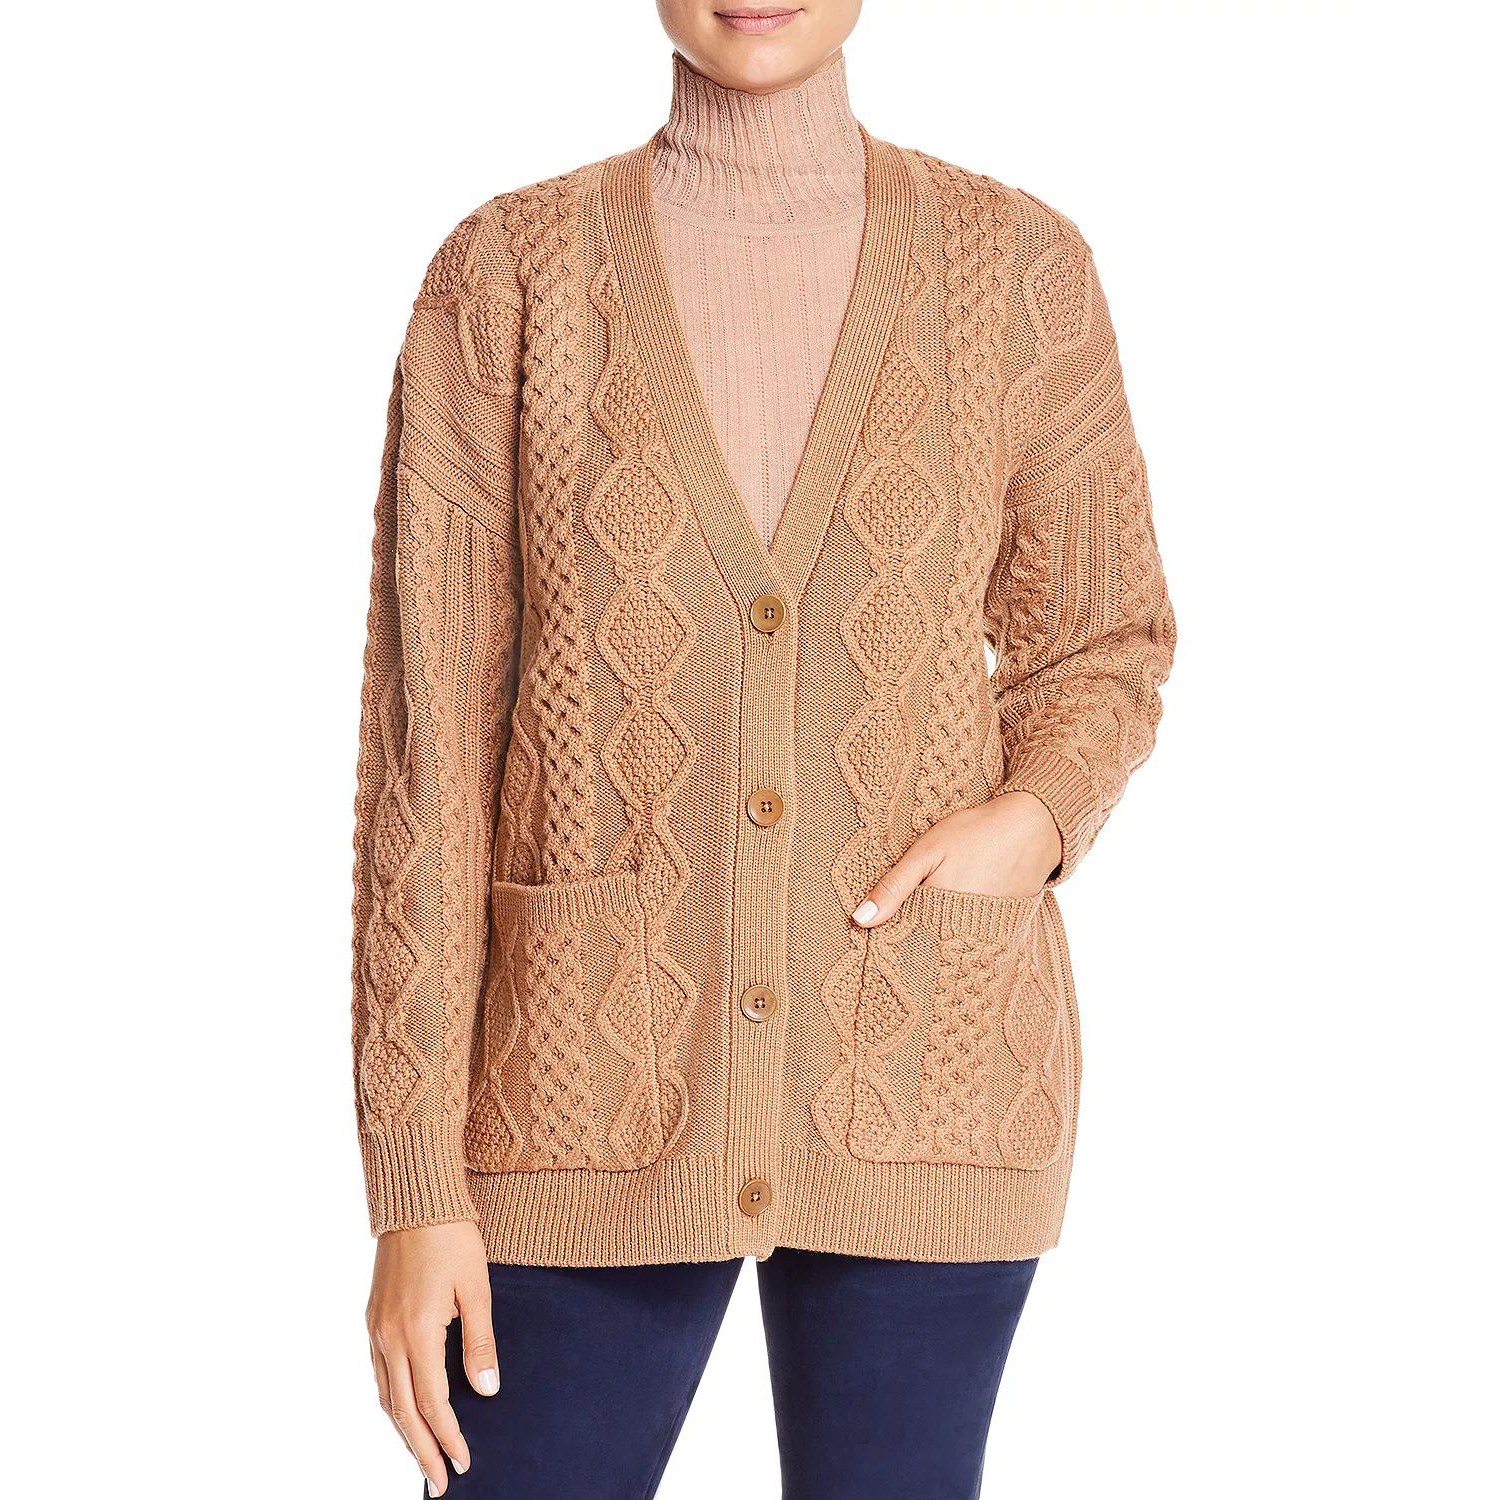 Elie Tahari Fei Wool Cable-Knit Cardigan